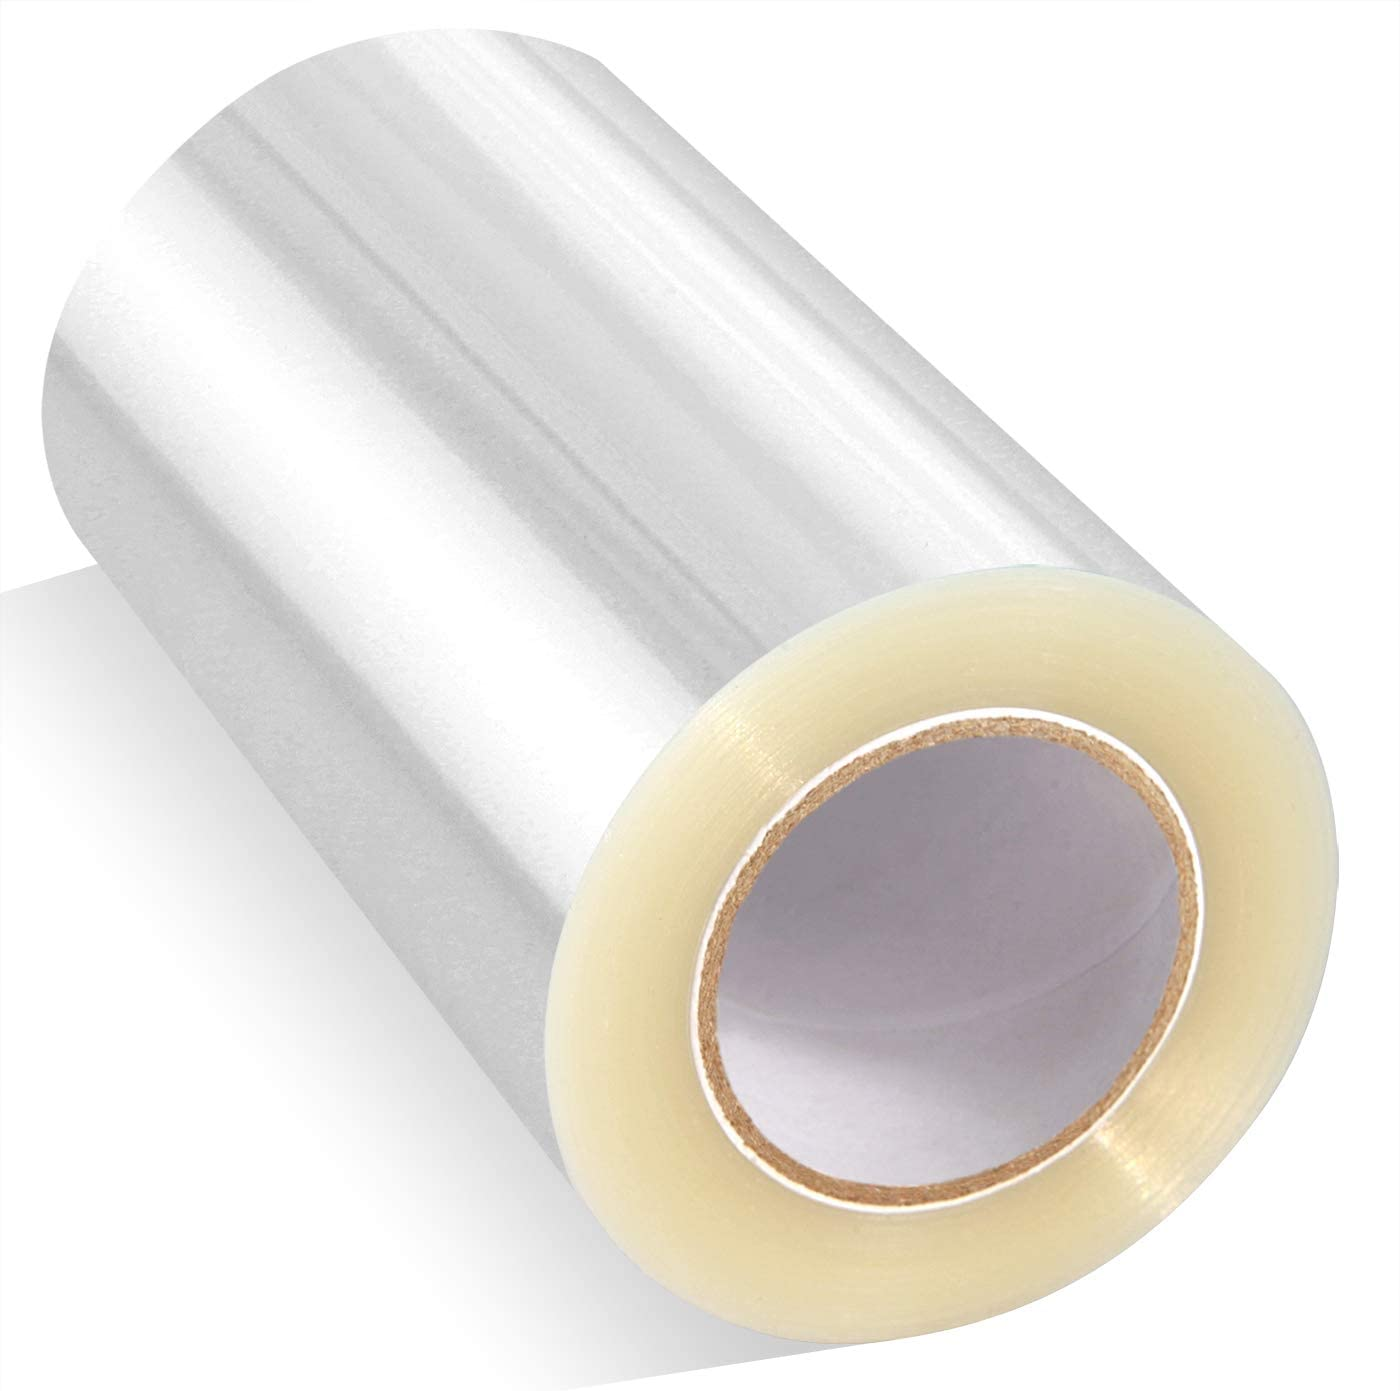 Cake Collar, GUCUJI Chocolate Mousse and Cake Decorating Acetate Sheet CLEAR ACETATE ROLL 125 Micron (3.1 X 394 inch)